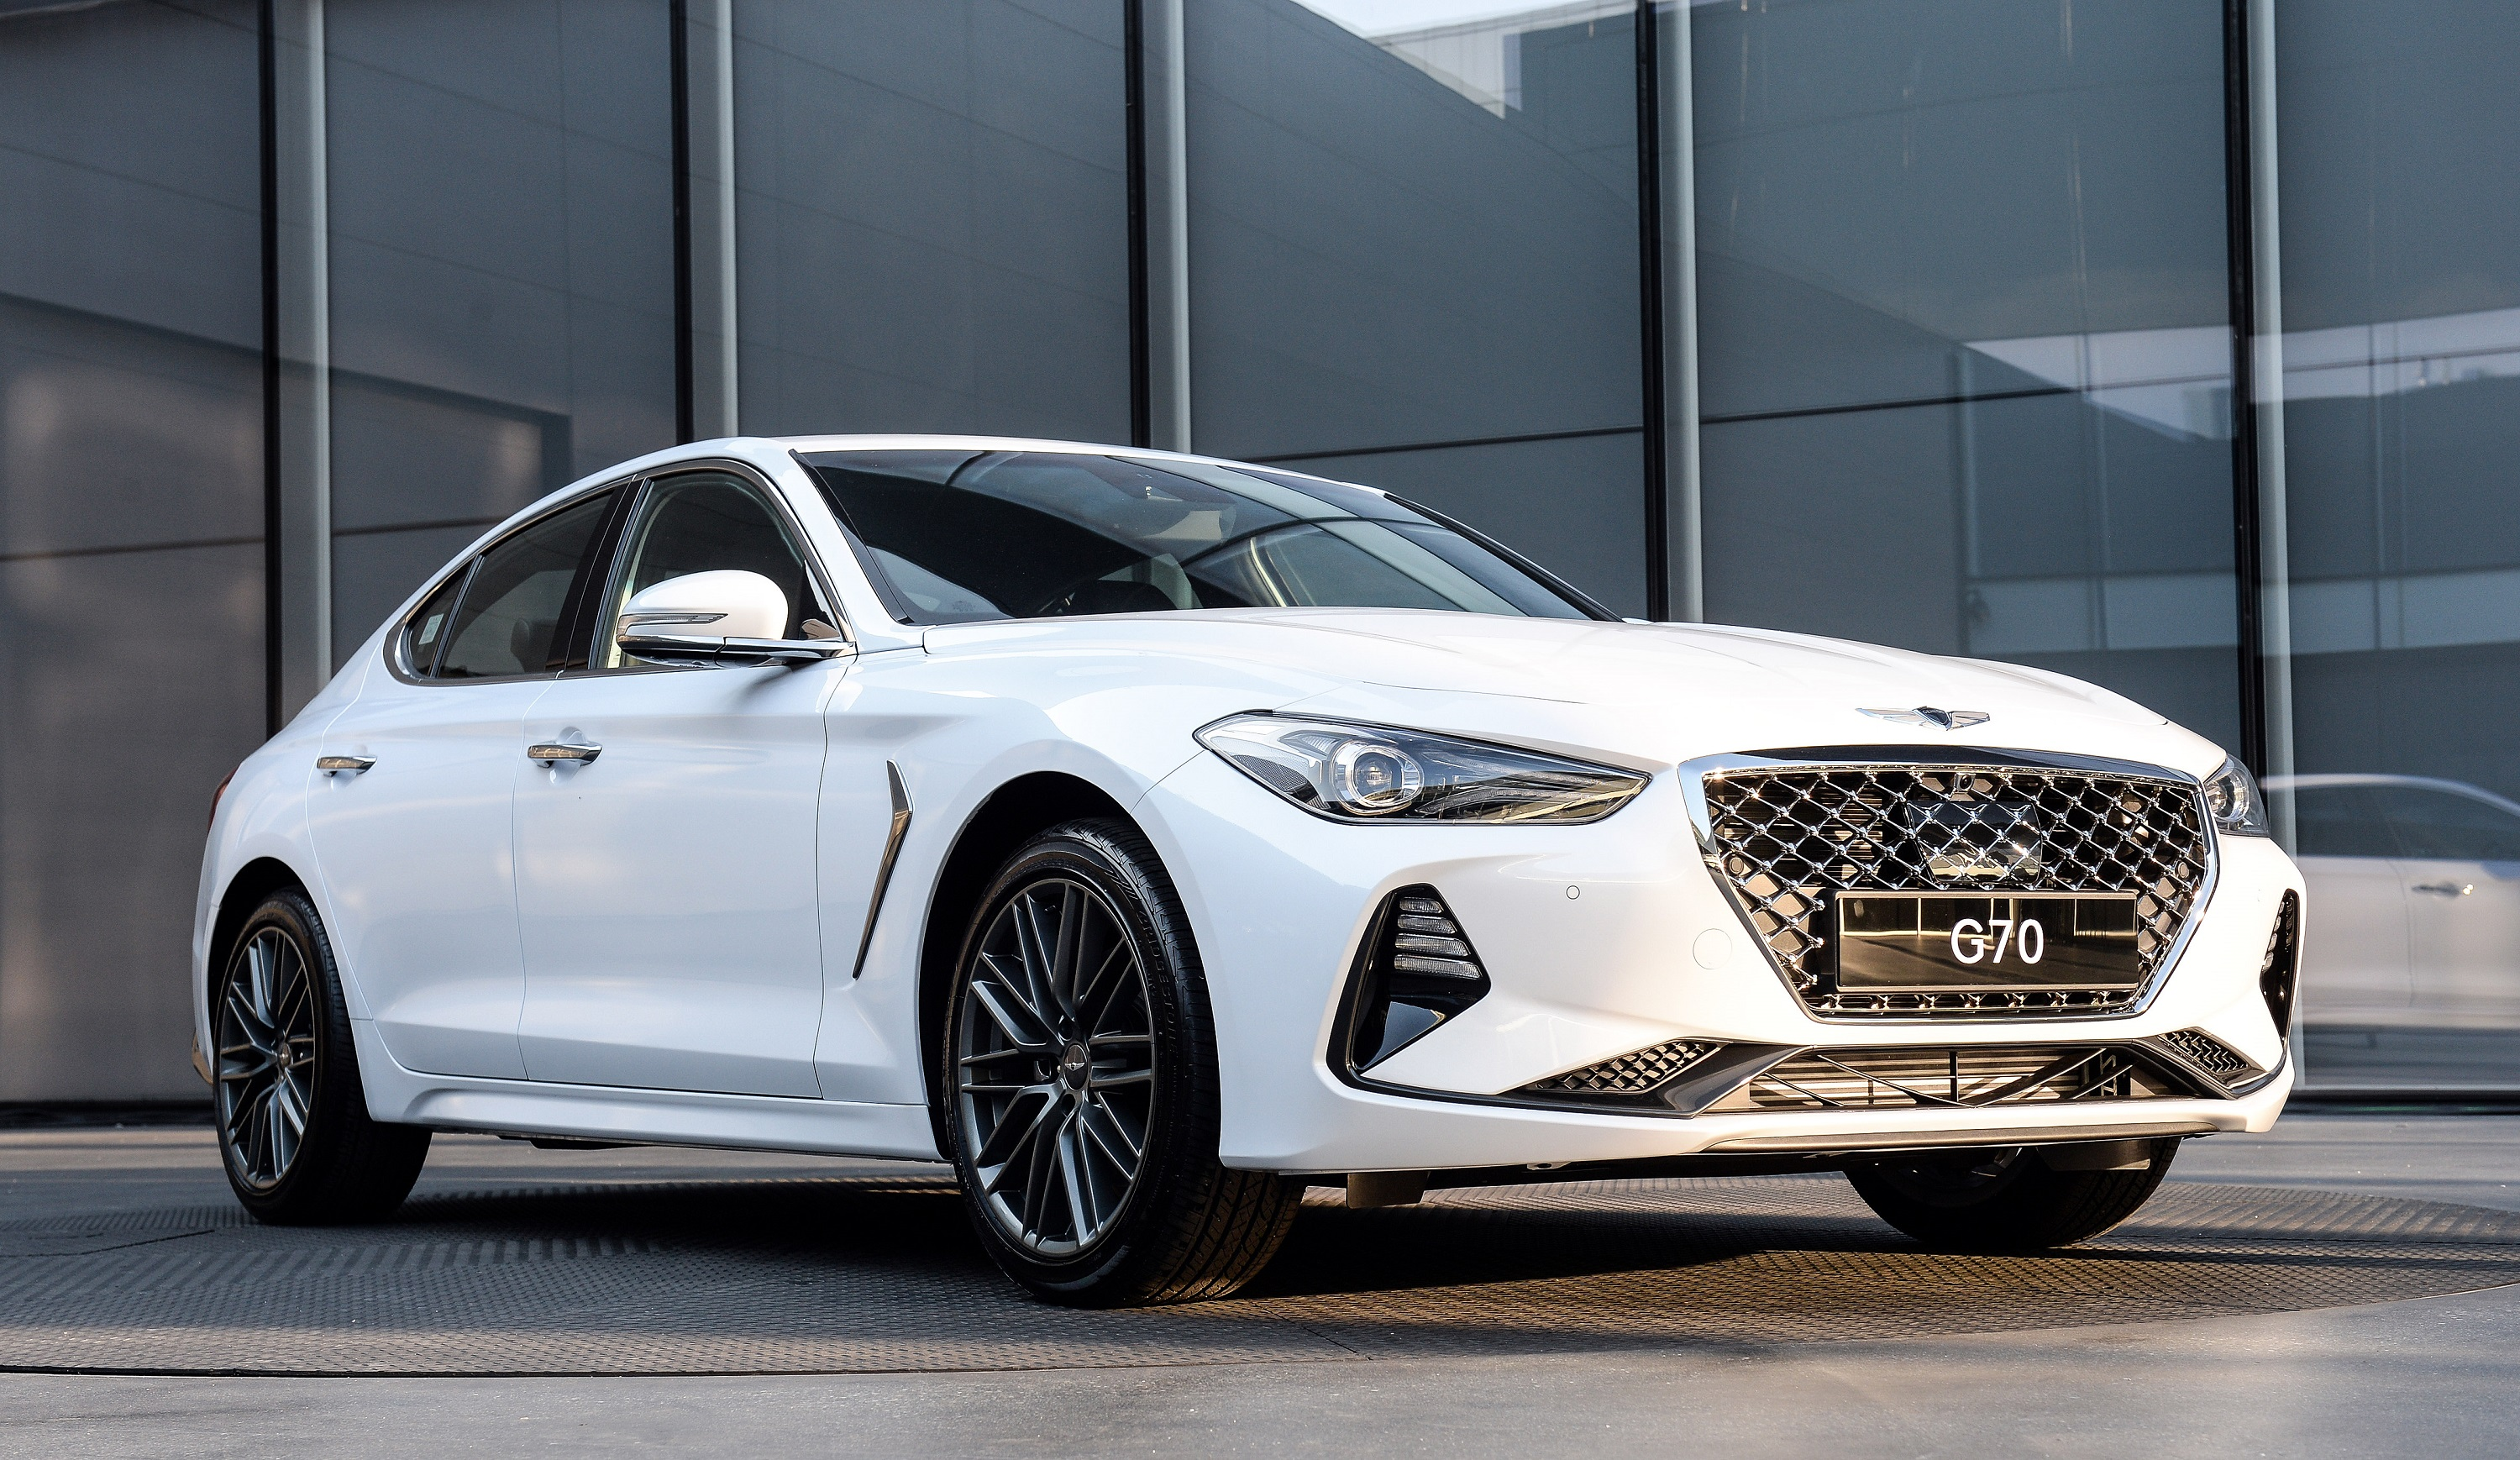 Genesis G70 All New 2019 Luxury Compact Sedan New On Wheels